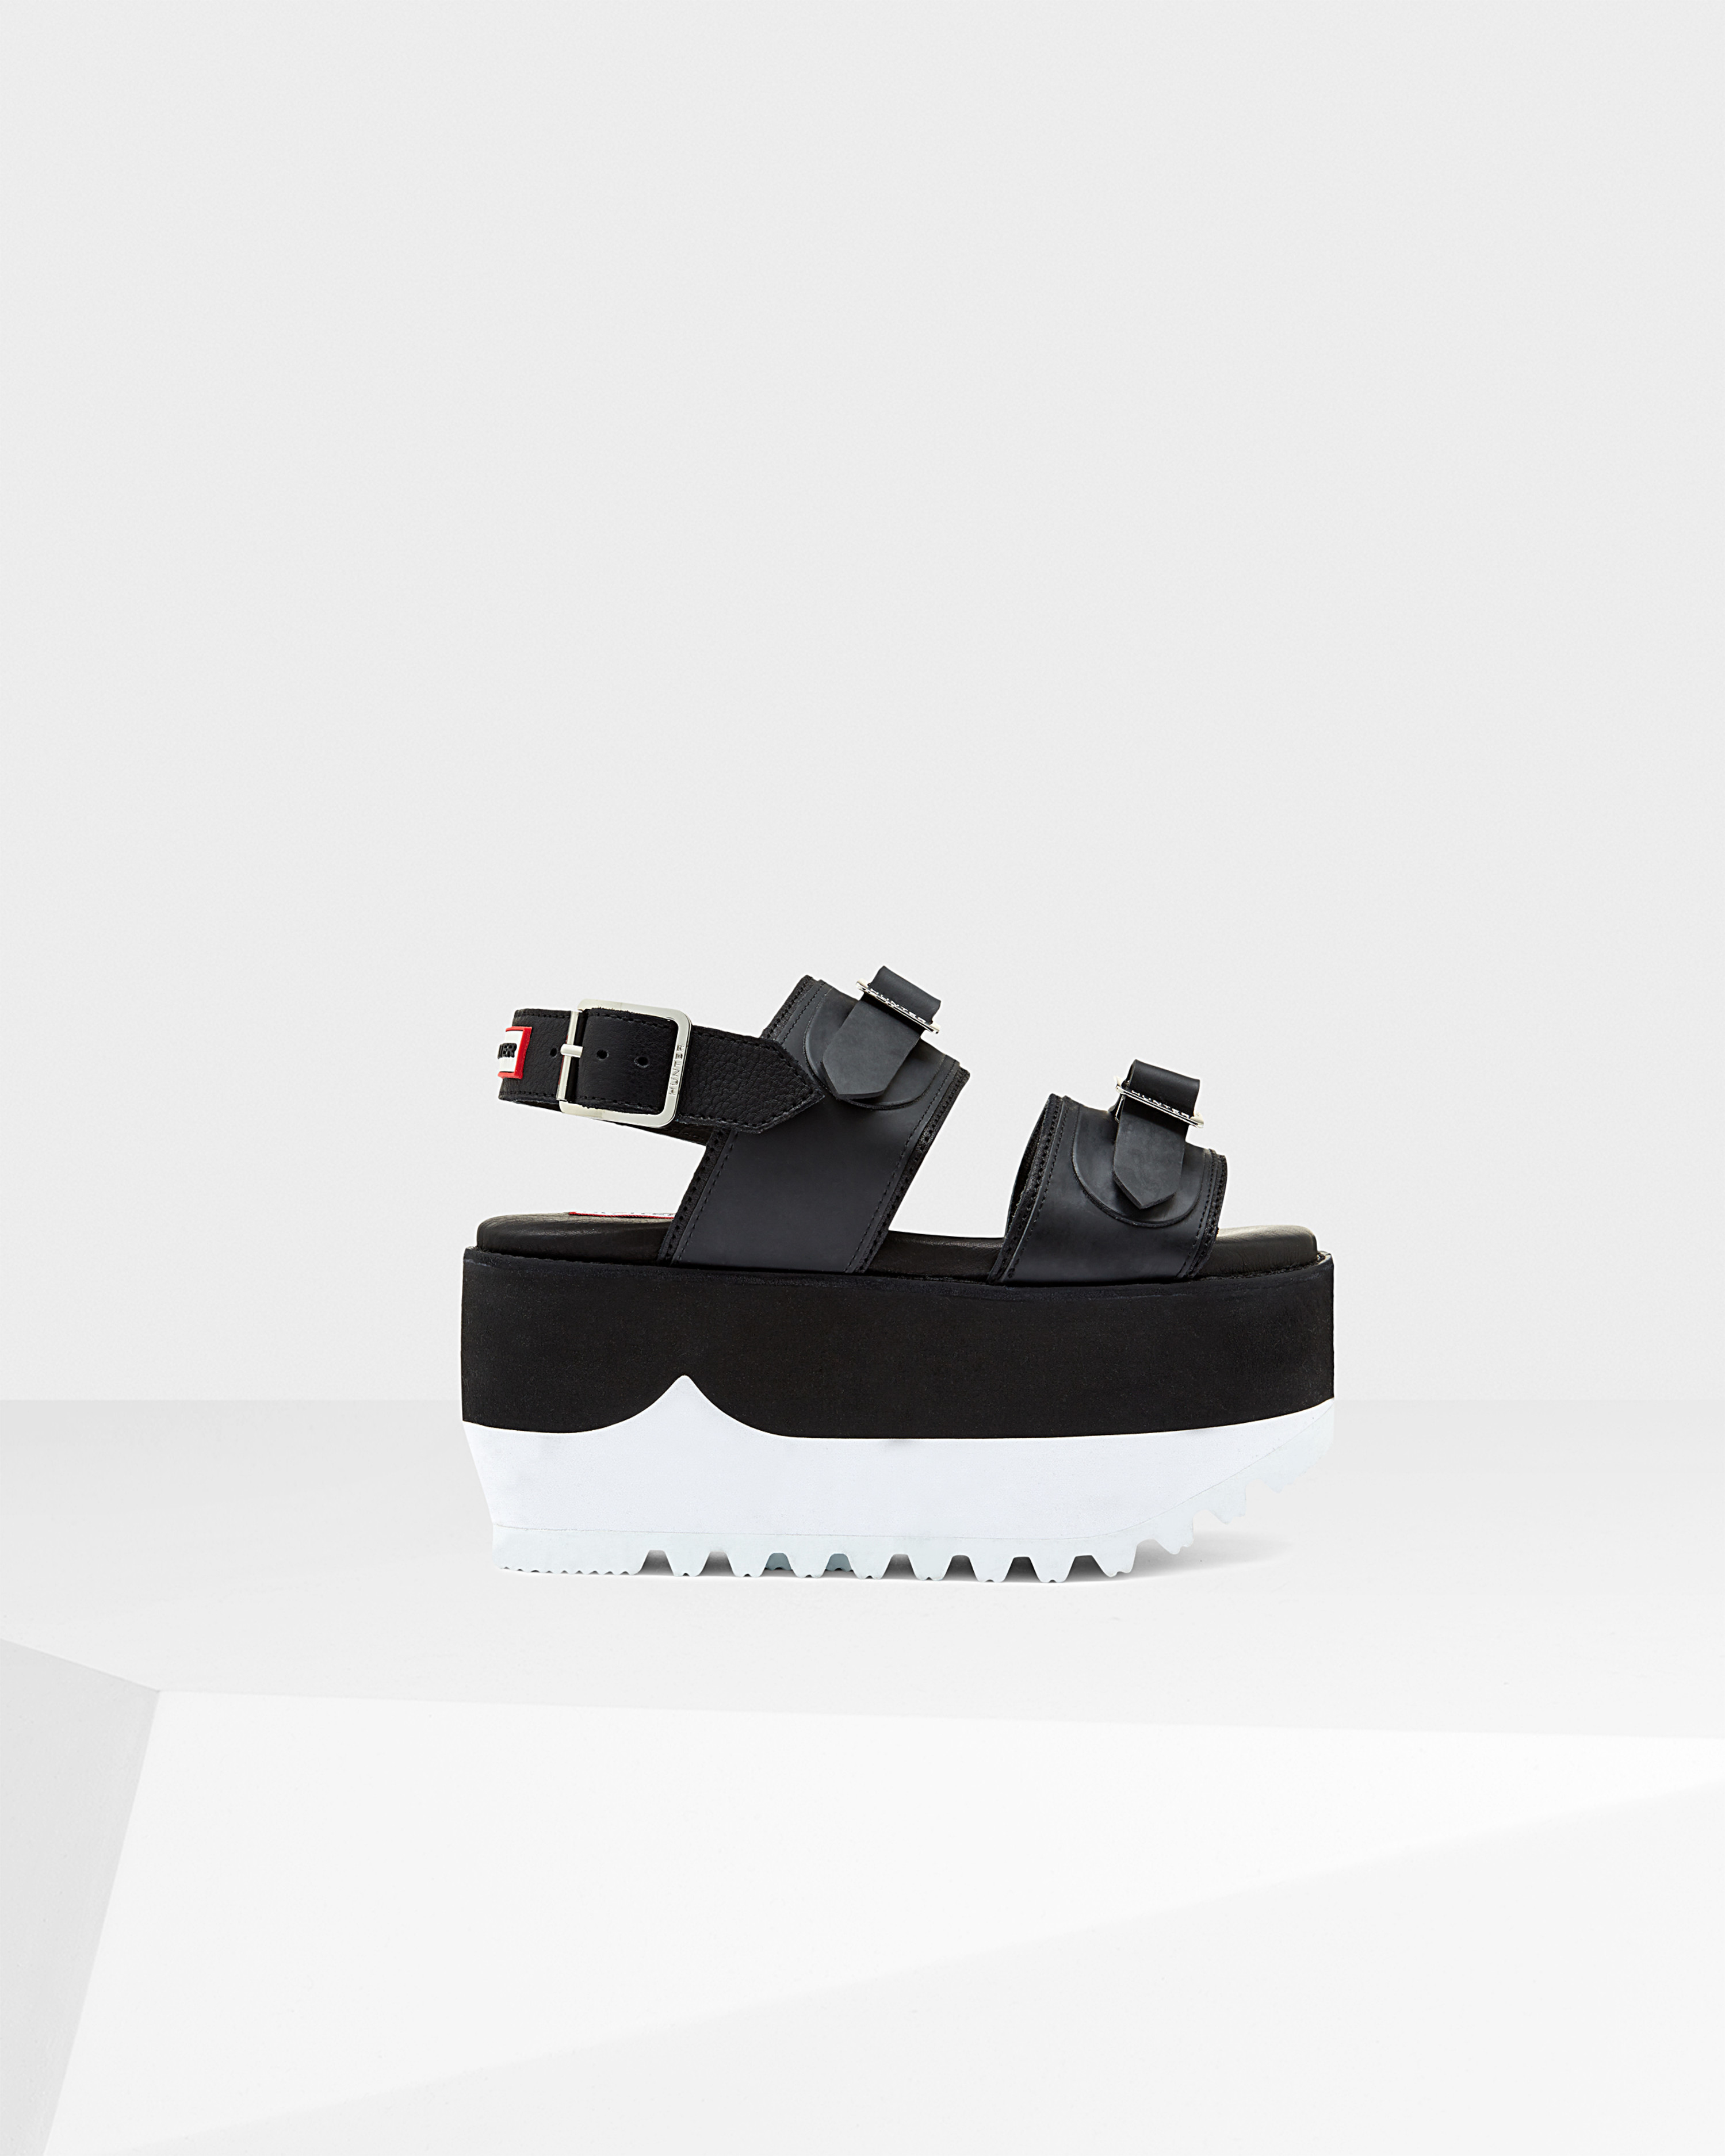 c6b4f5715f0 Lyst - HUNTER Original Double Buckle High Flatform Sandal in Black